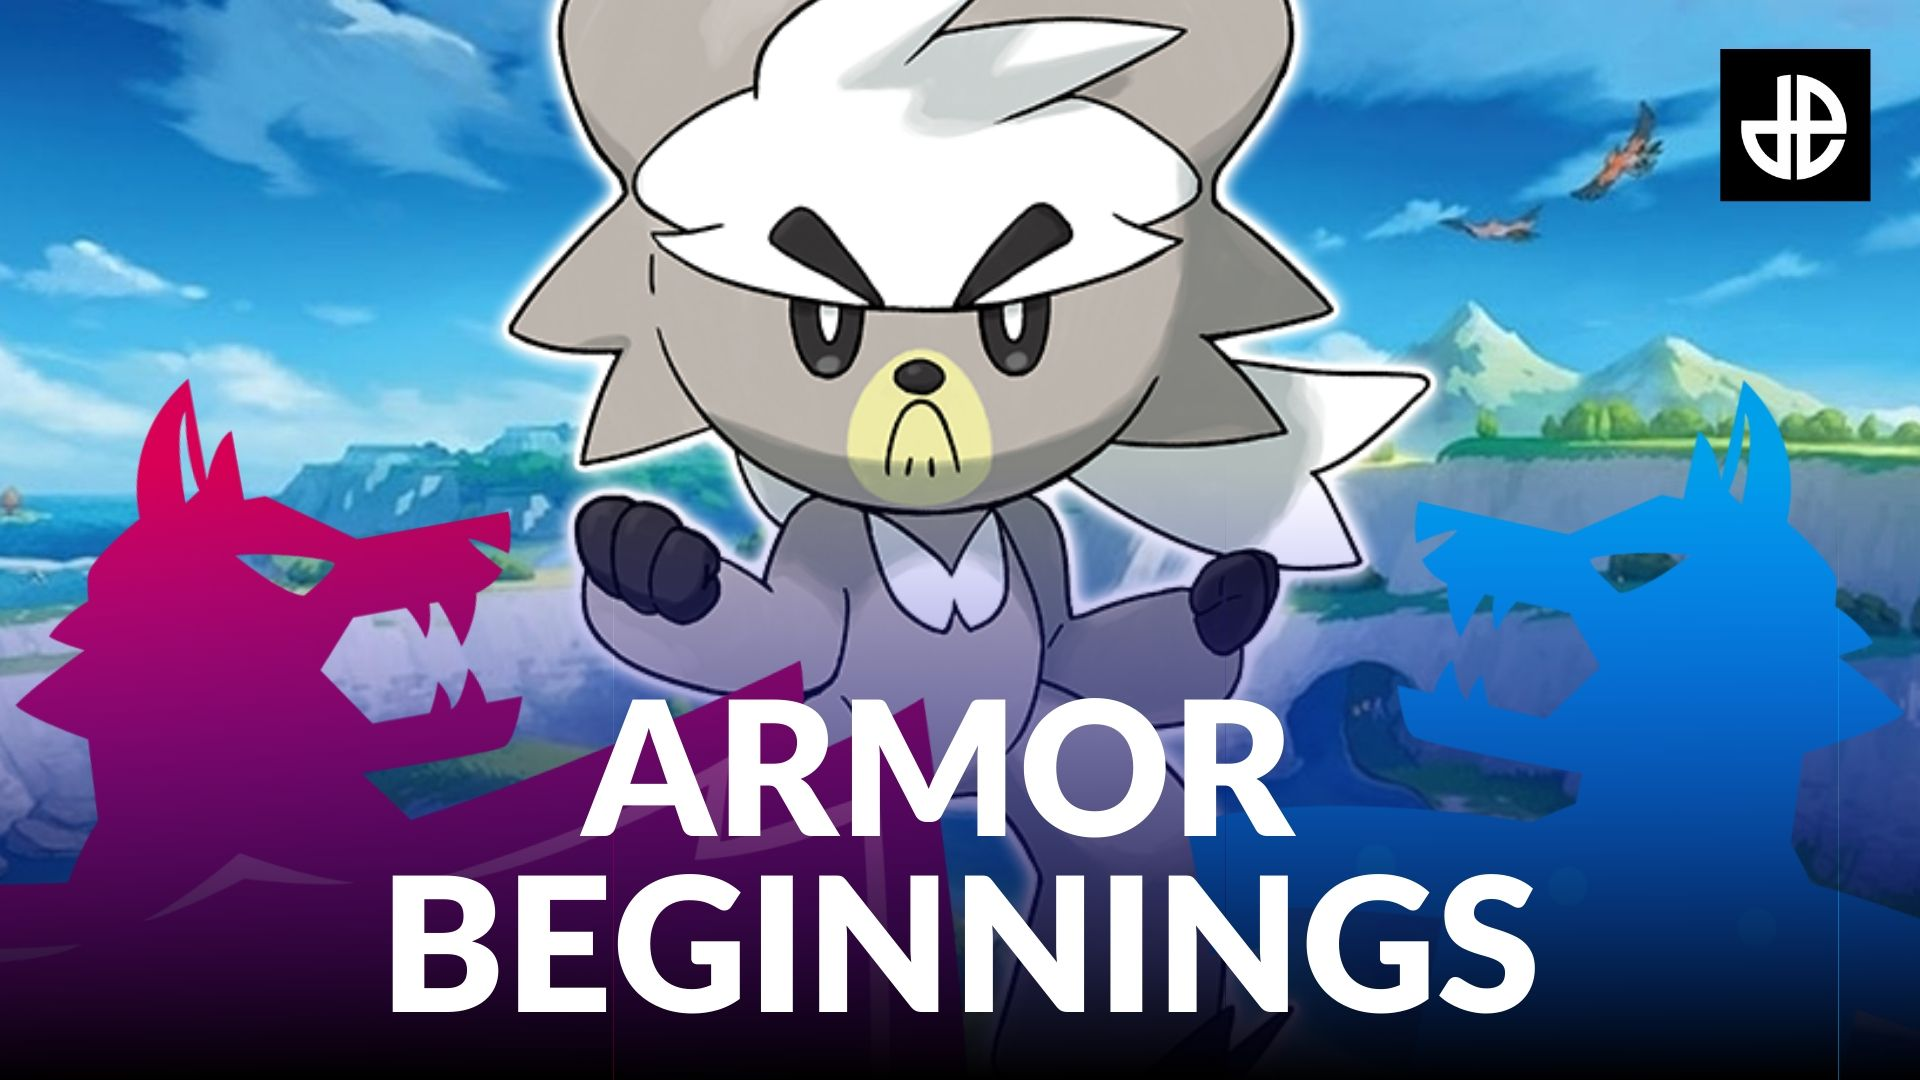 Pokemon Armor Beginnings tournament graphic